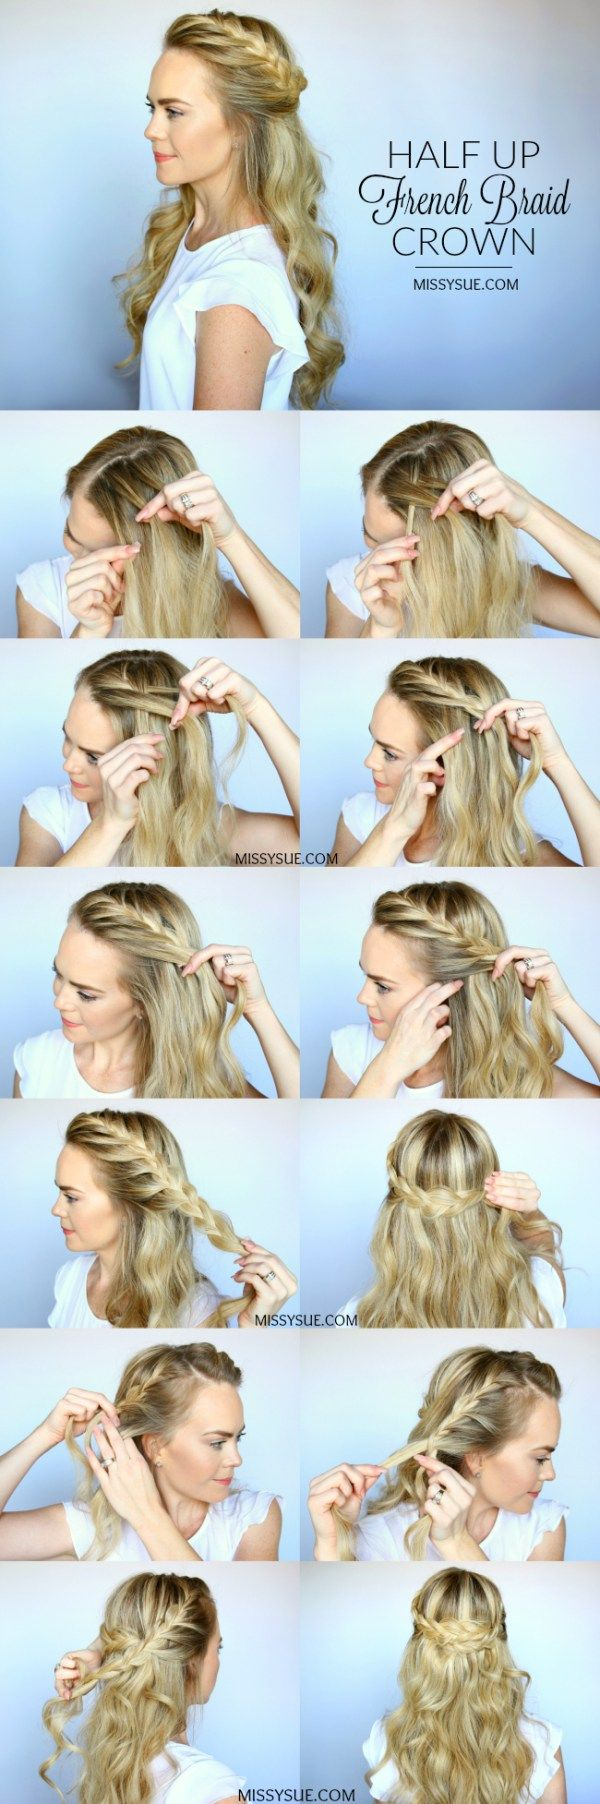 half-up-frenc-braid-crown-hair-tutorial